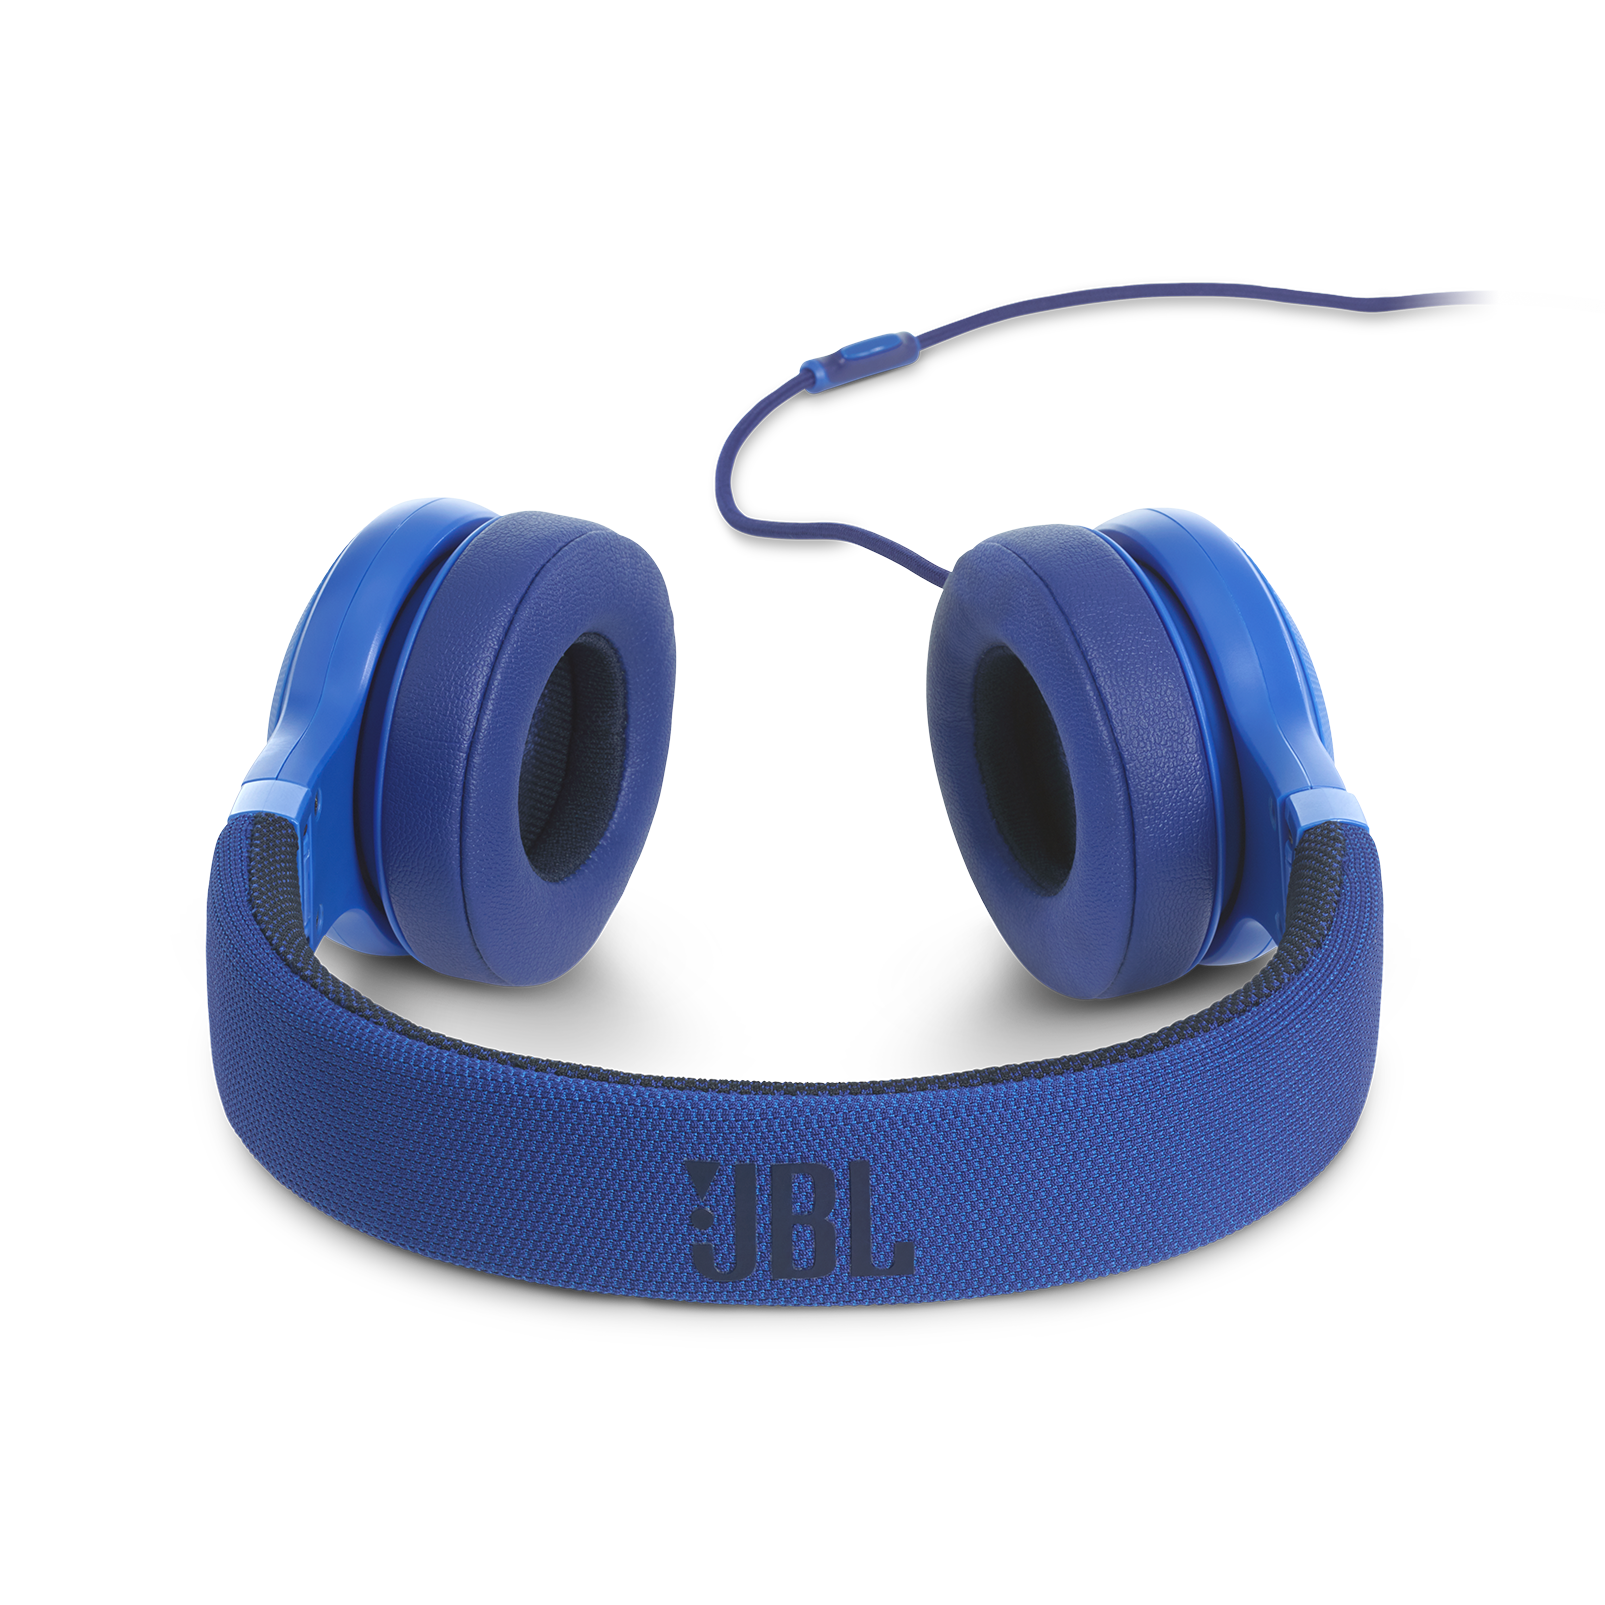 E35 - Blue - On-ear headphones - Detailshot 4